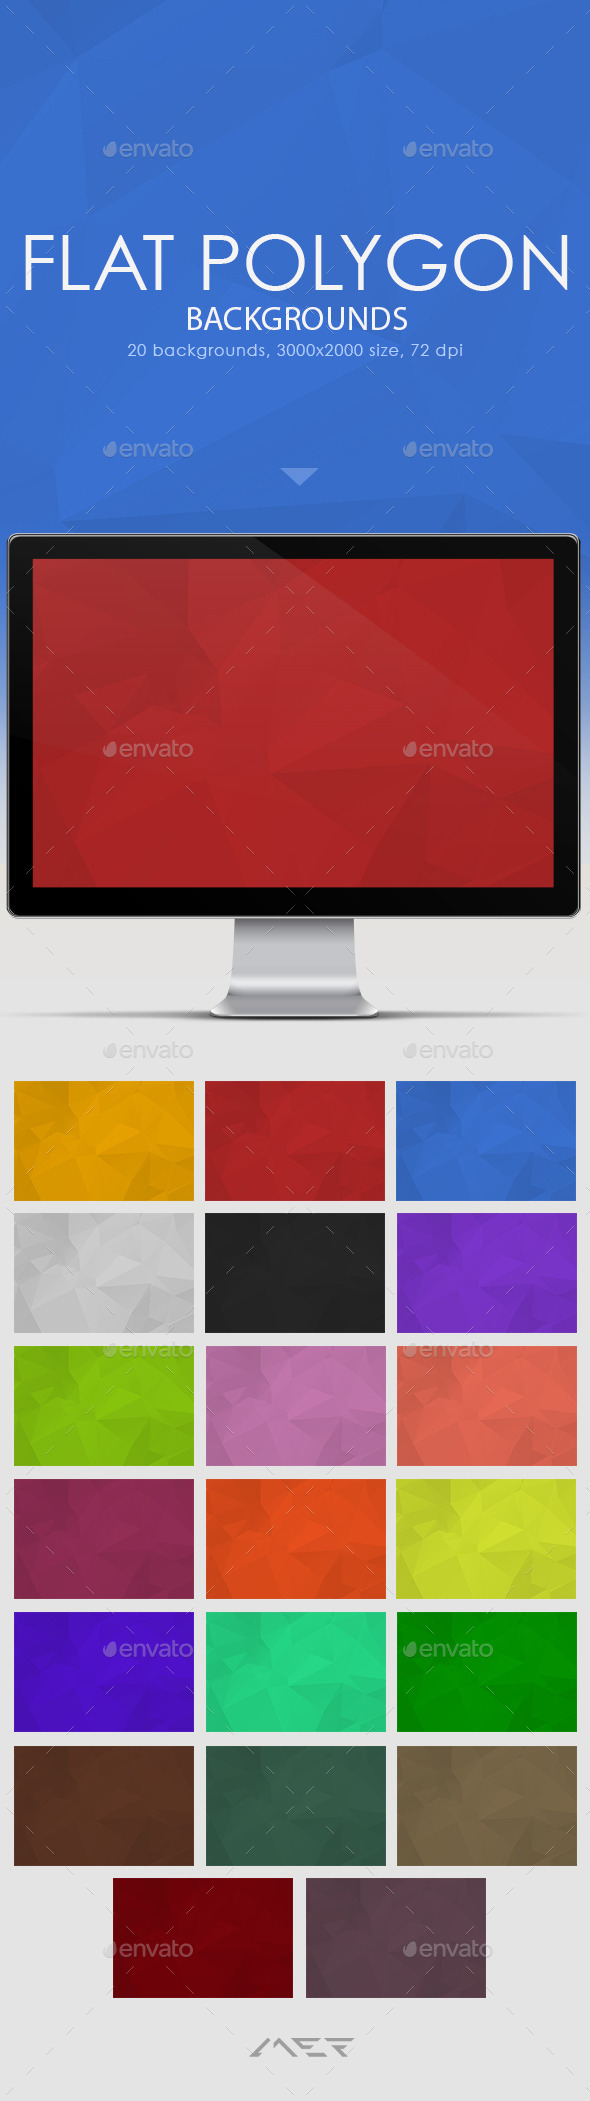 GraphicRiver Flat Polygon Backgrounds 10507391